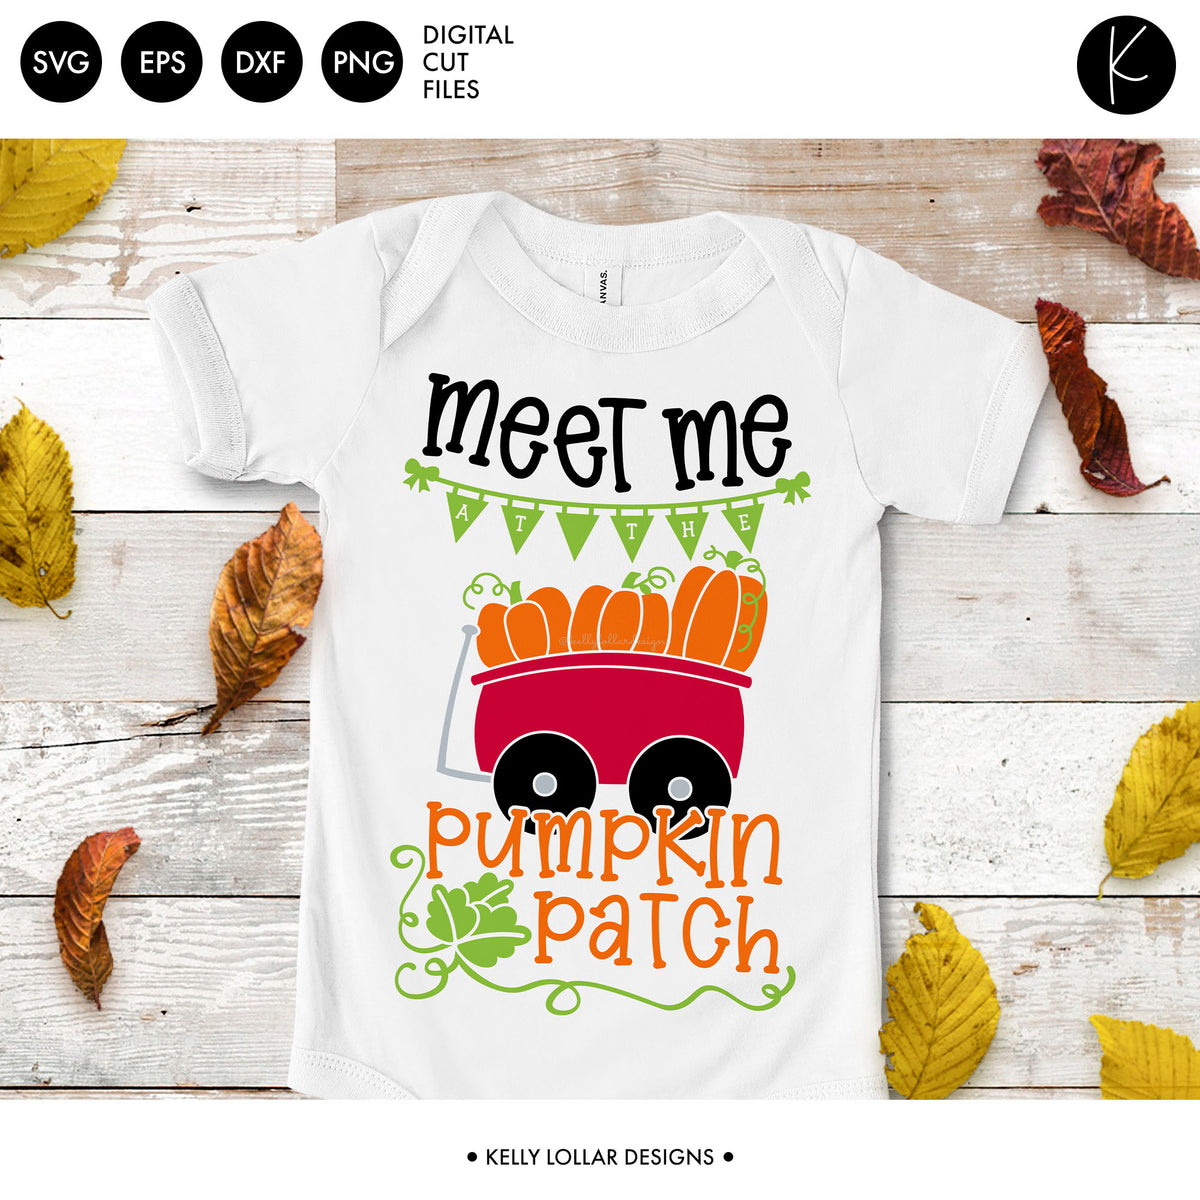 Meet Me at the Pumpkin Patch | SVG DXF EPS PNG Cut Files